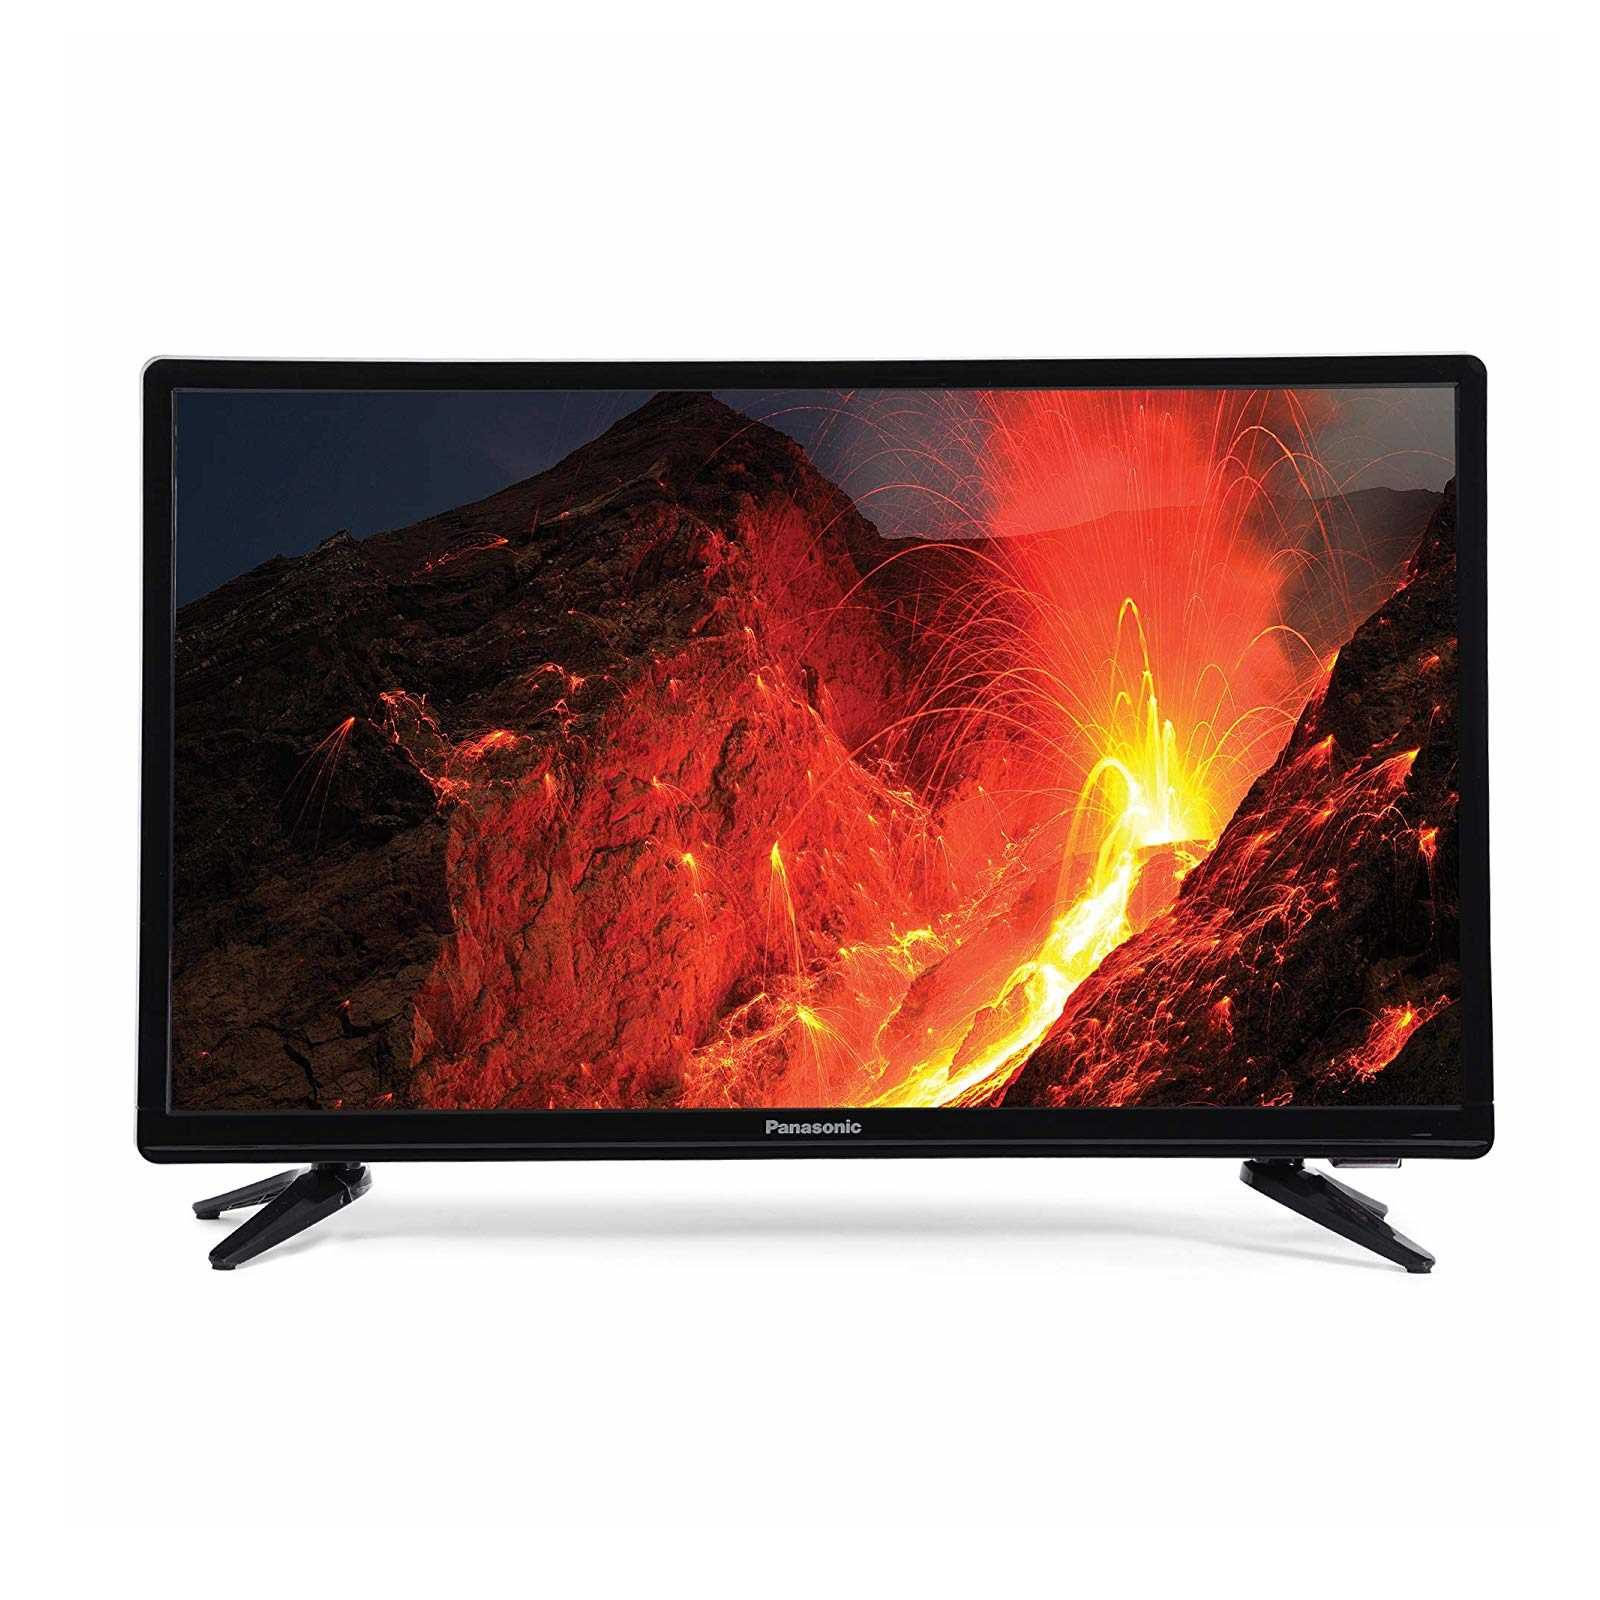 Panasonic TH-22F200DX 22 Inch Full HD LED Television